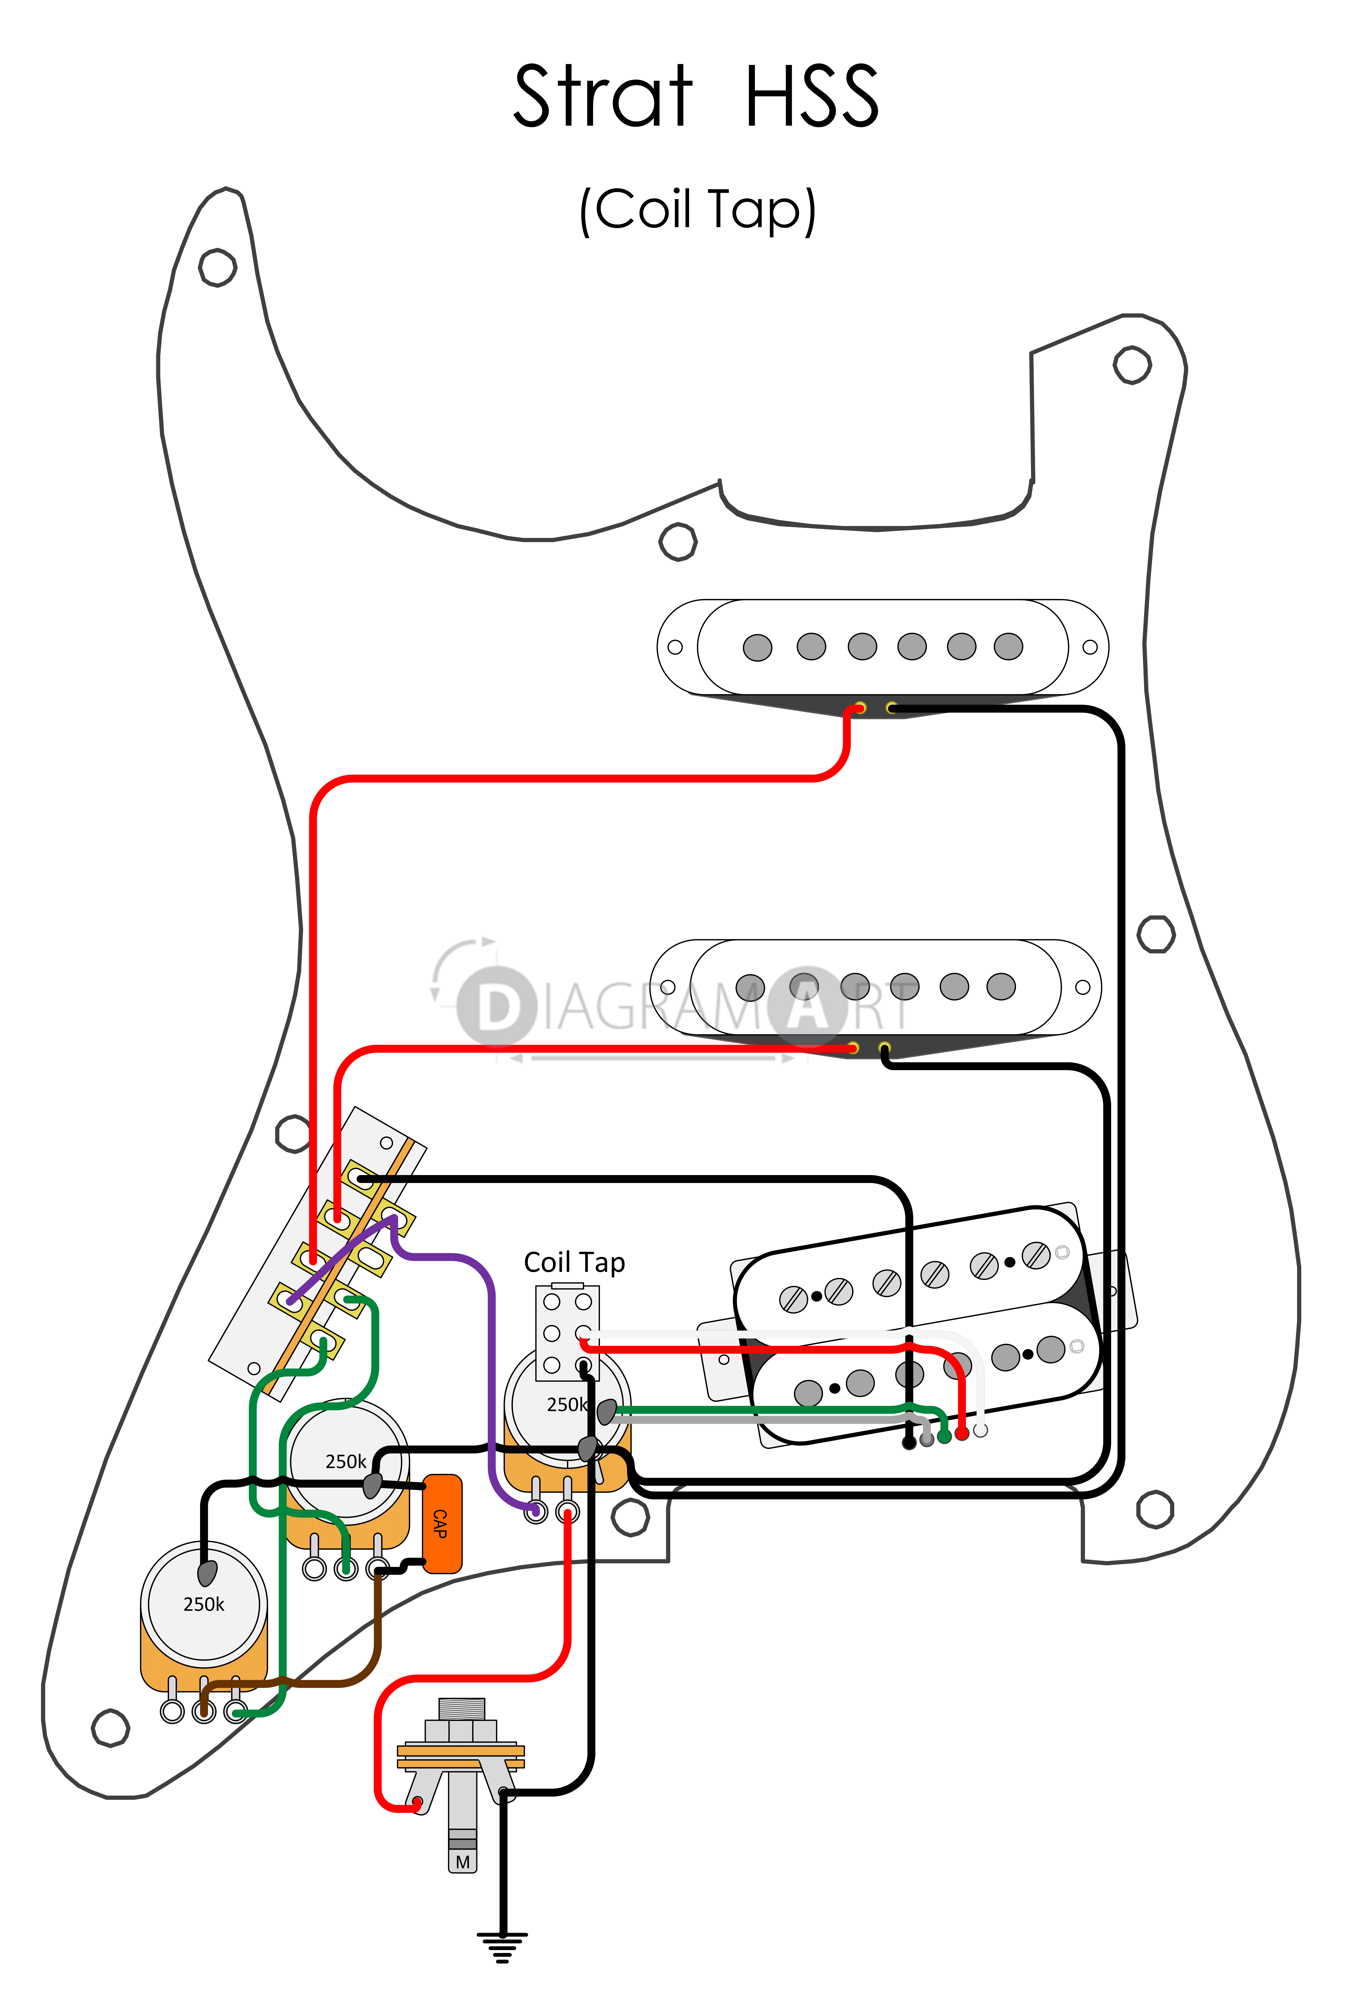 Strat Dual Humbucker Wiring Diagram Library. Electric Guitar Wiring Strat Hss Coil Tap Circuit Rh Diagramart Diagram. Bentley. Bentley Guitar Wiring Diagram At Scoala.co